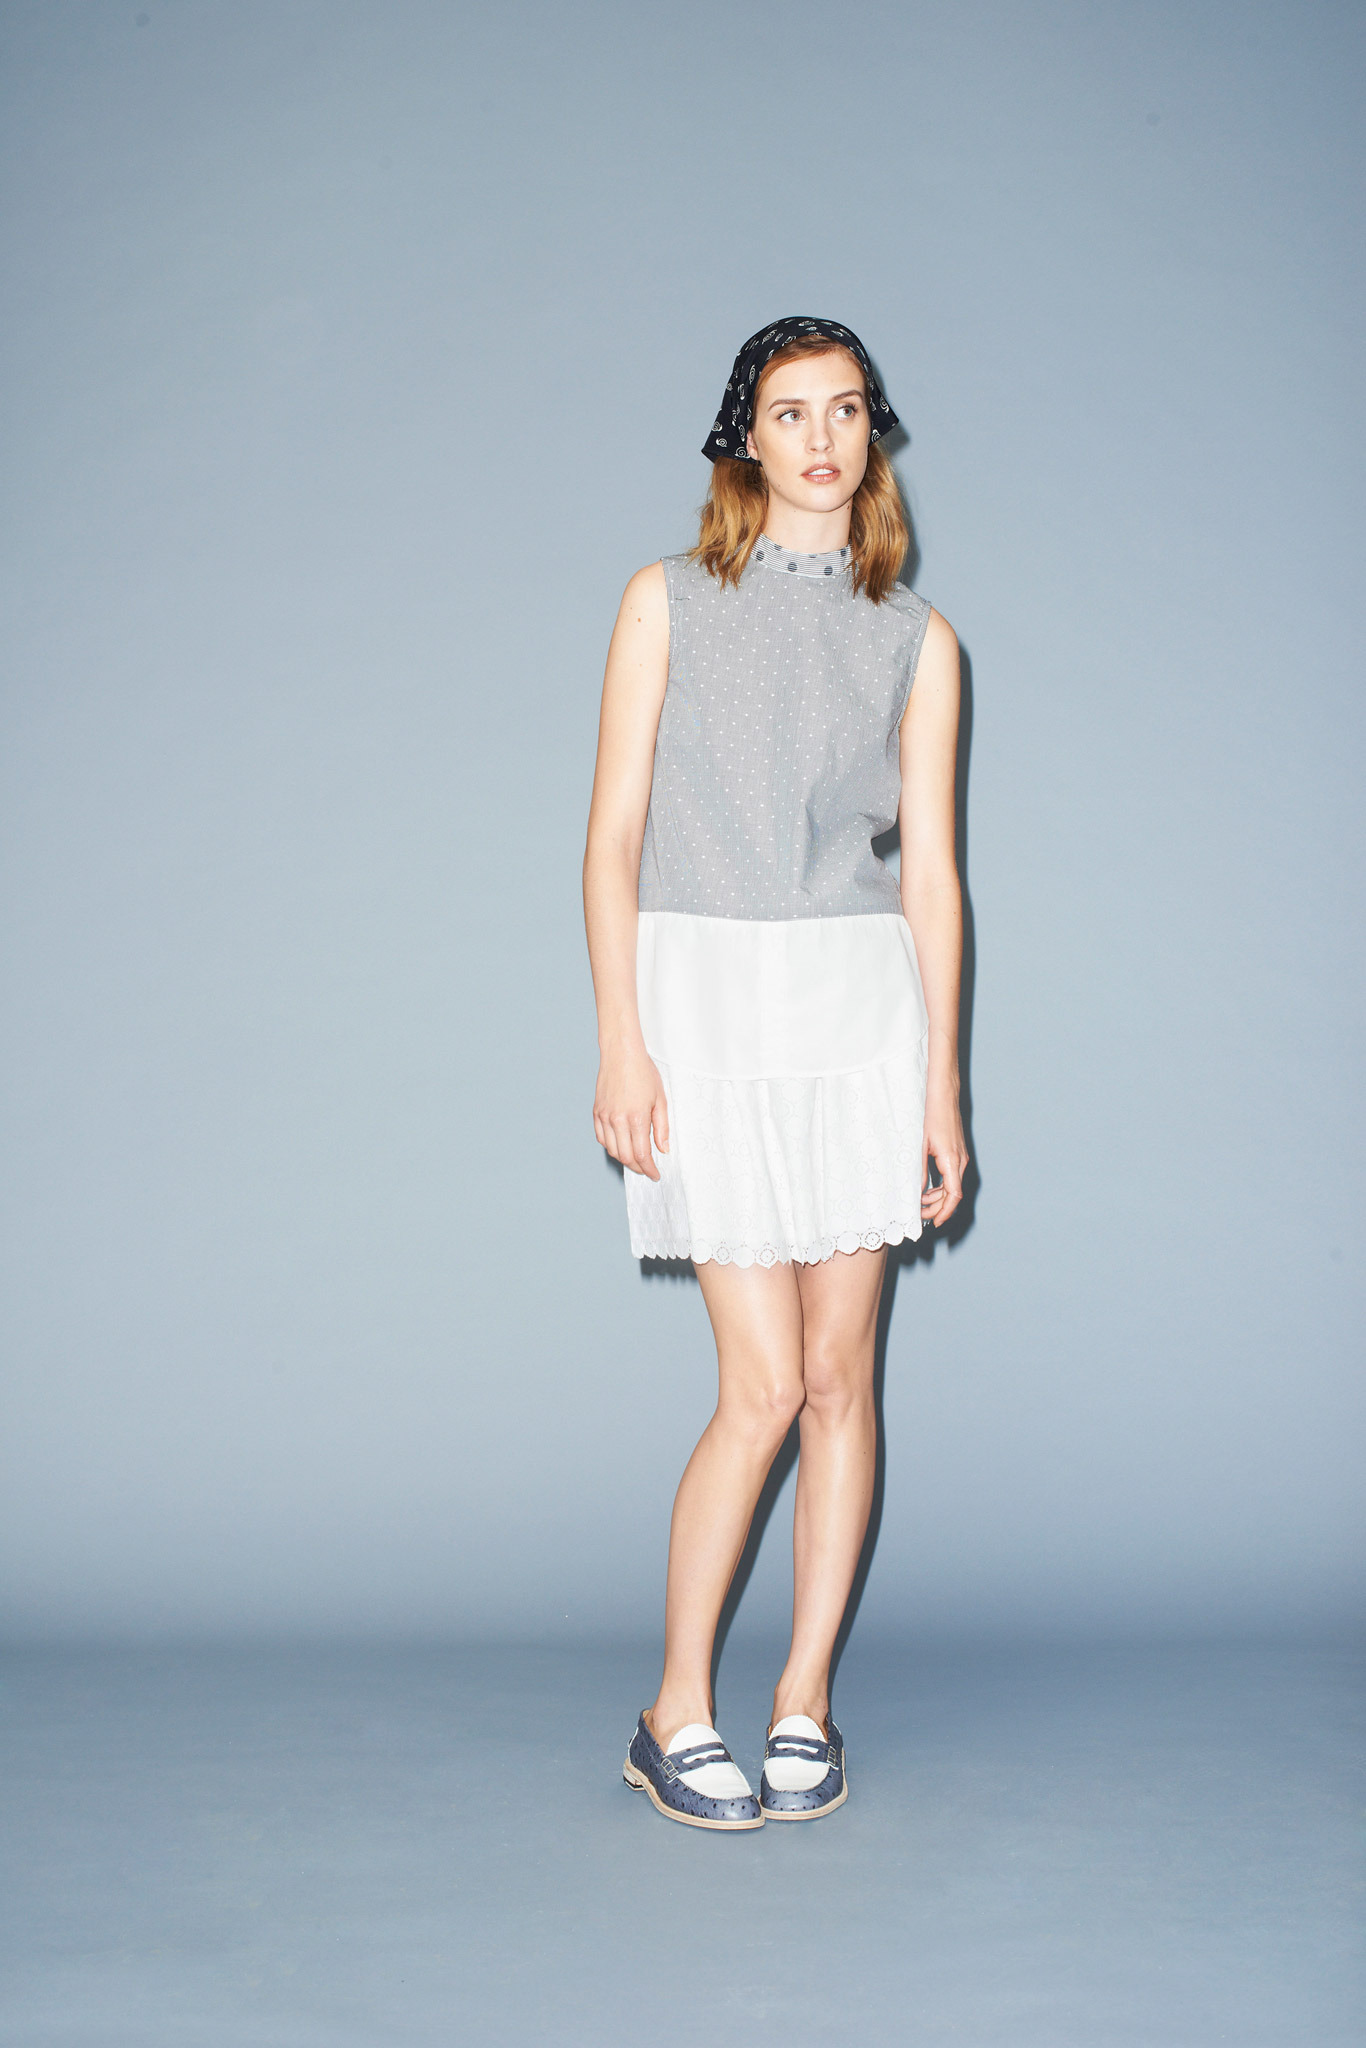 Julia Frauche | Band of Outsiders Resort 2015 (Photography: courtesy of Band of Outsiders via Style.com)